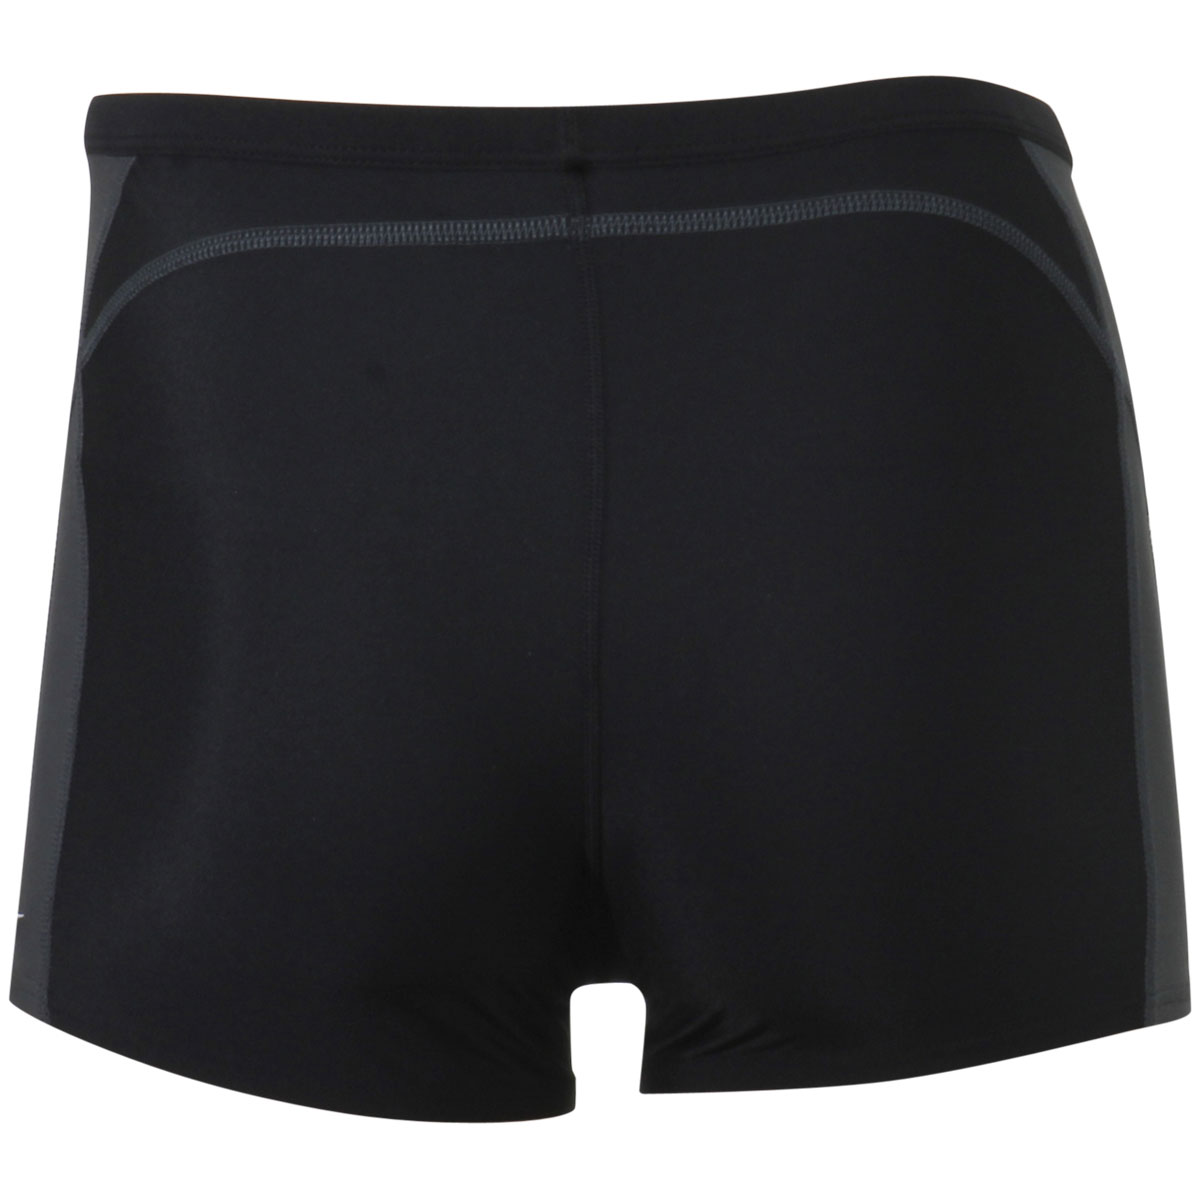 online store 34984 3fd84 Nike-Homme-Poly-Coeur-Solides-Carre-Jambe-Performance-